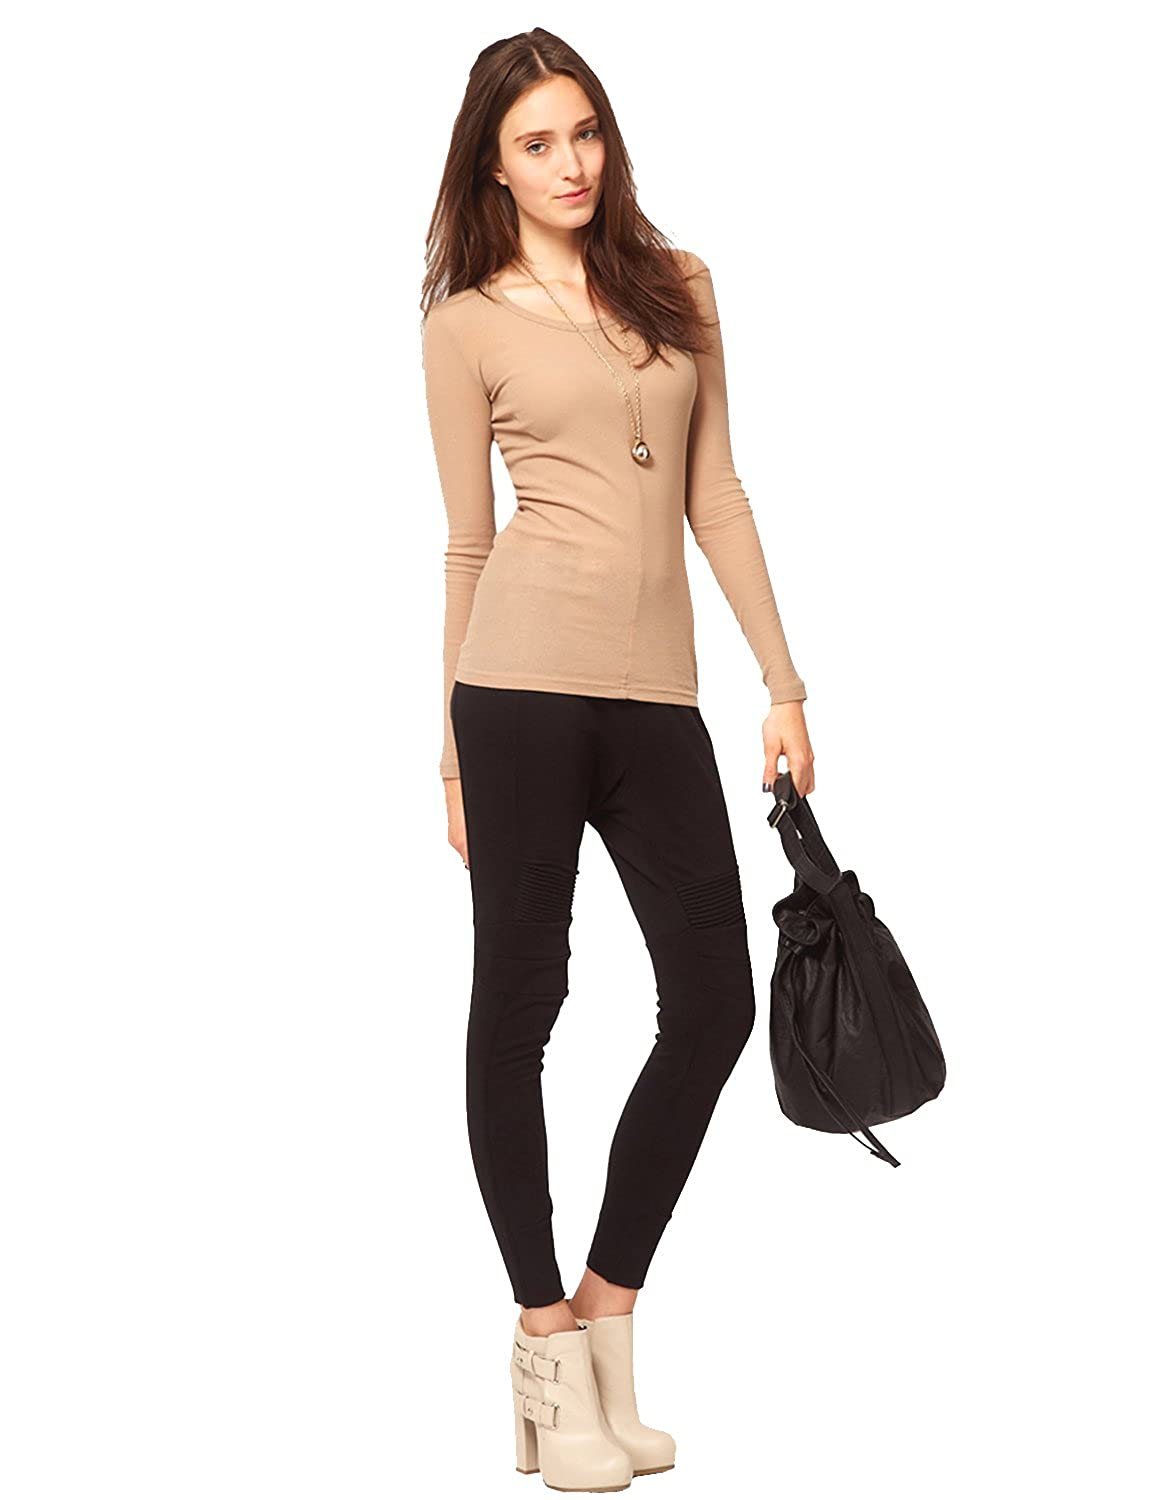 ELEGANCE1234 Elegance Women`s Plain Long Sleeve T-Shirt Crew Neck Tops(Ref:2214)